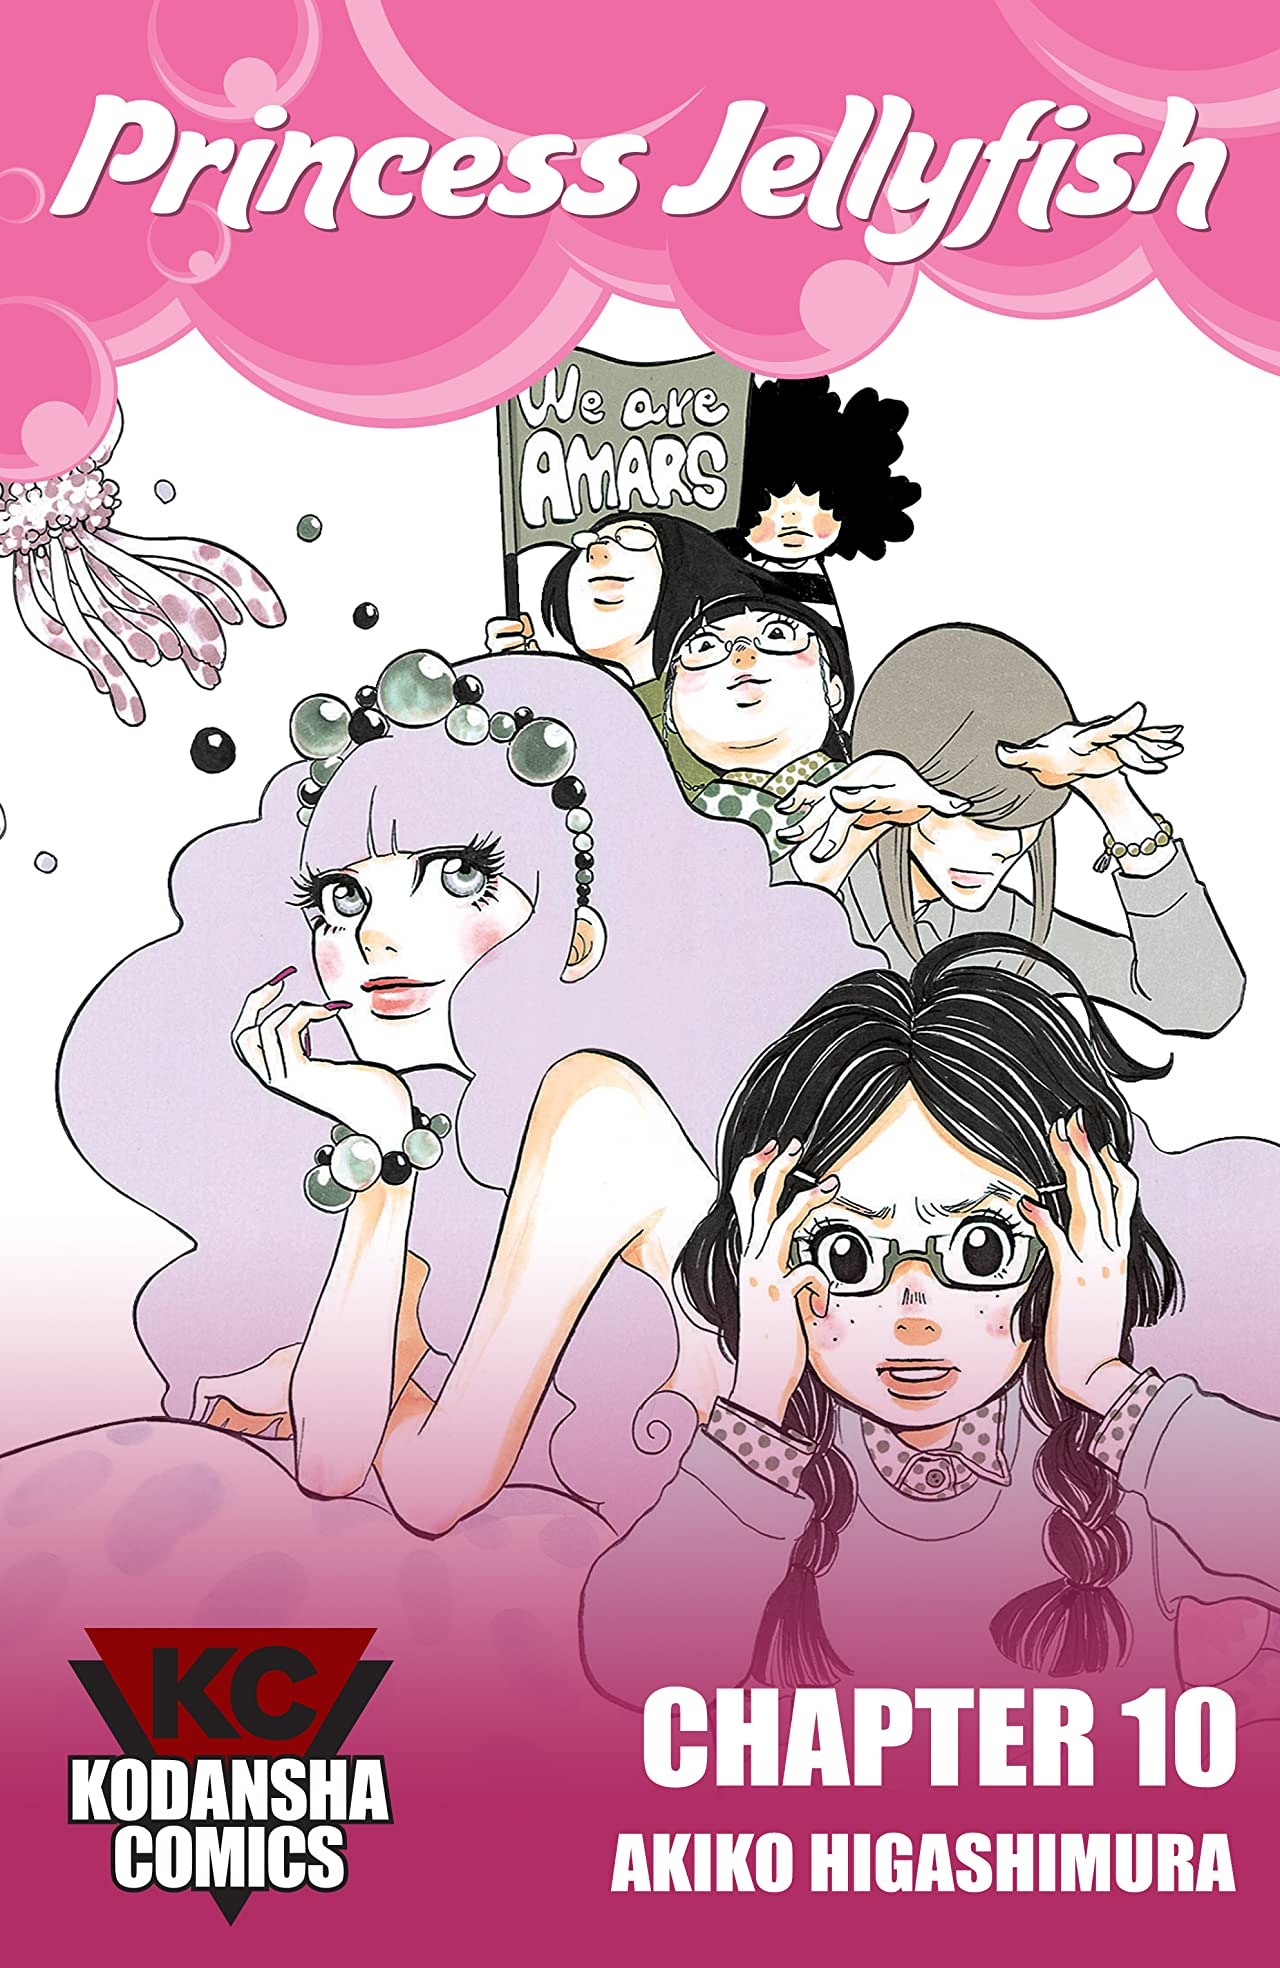 Princess Jellyfish #10